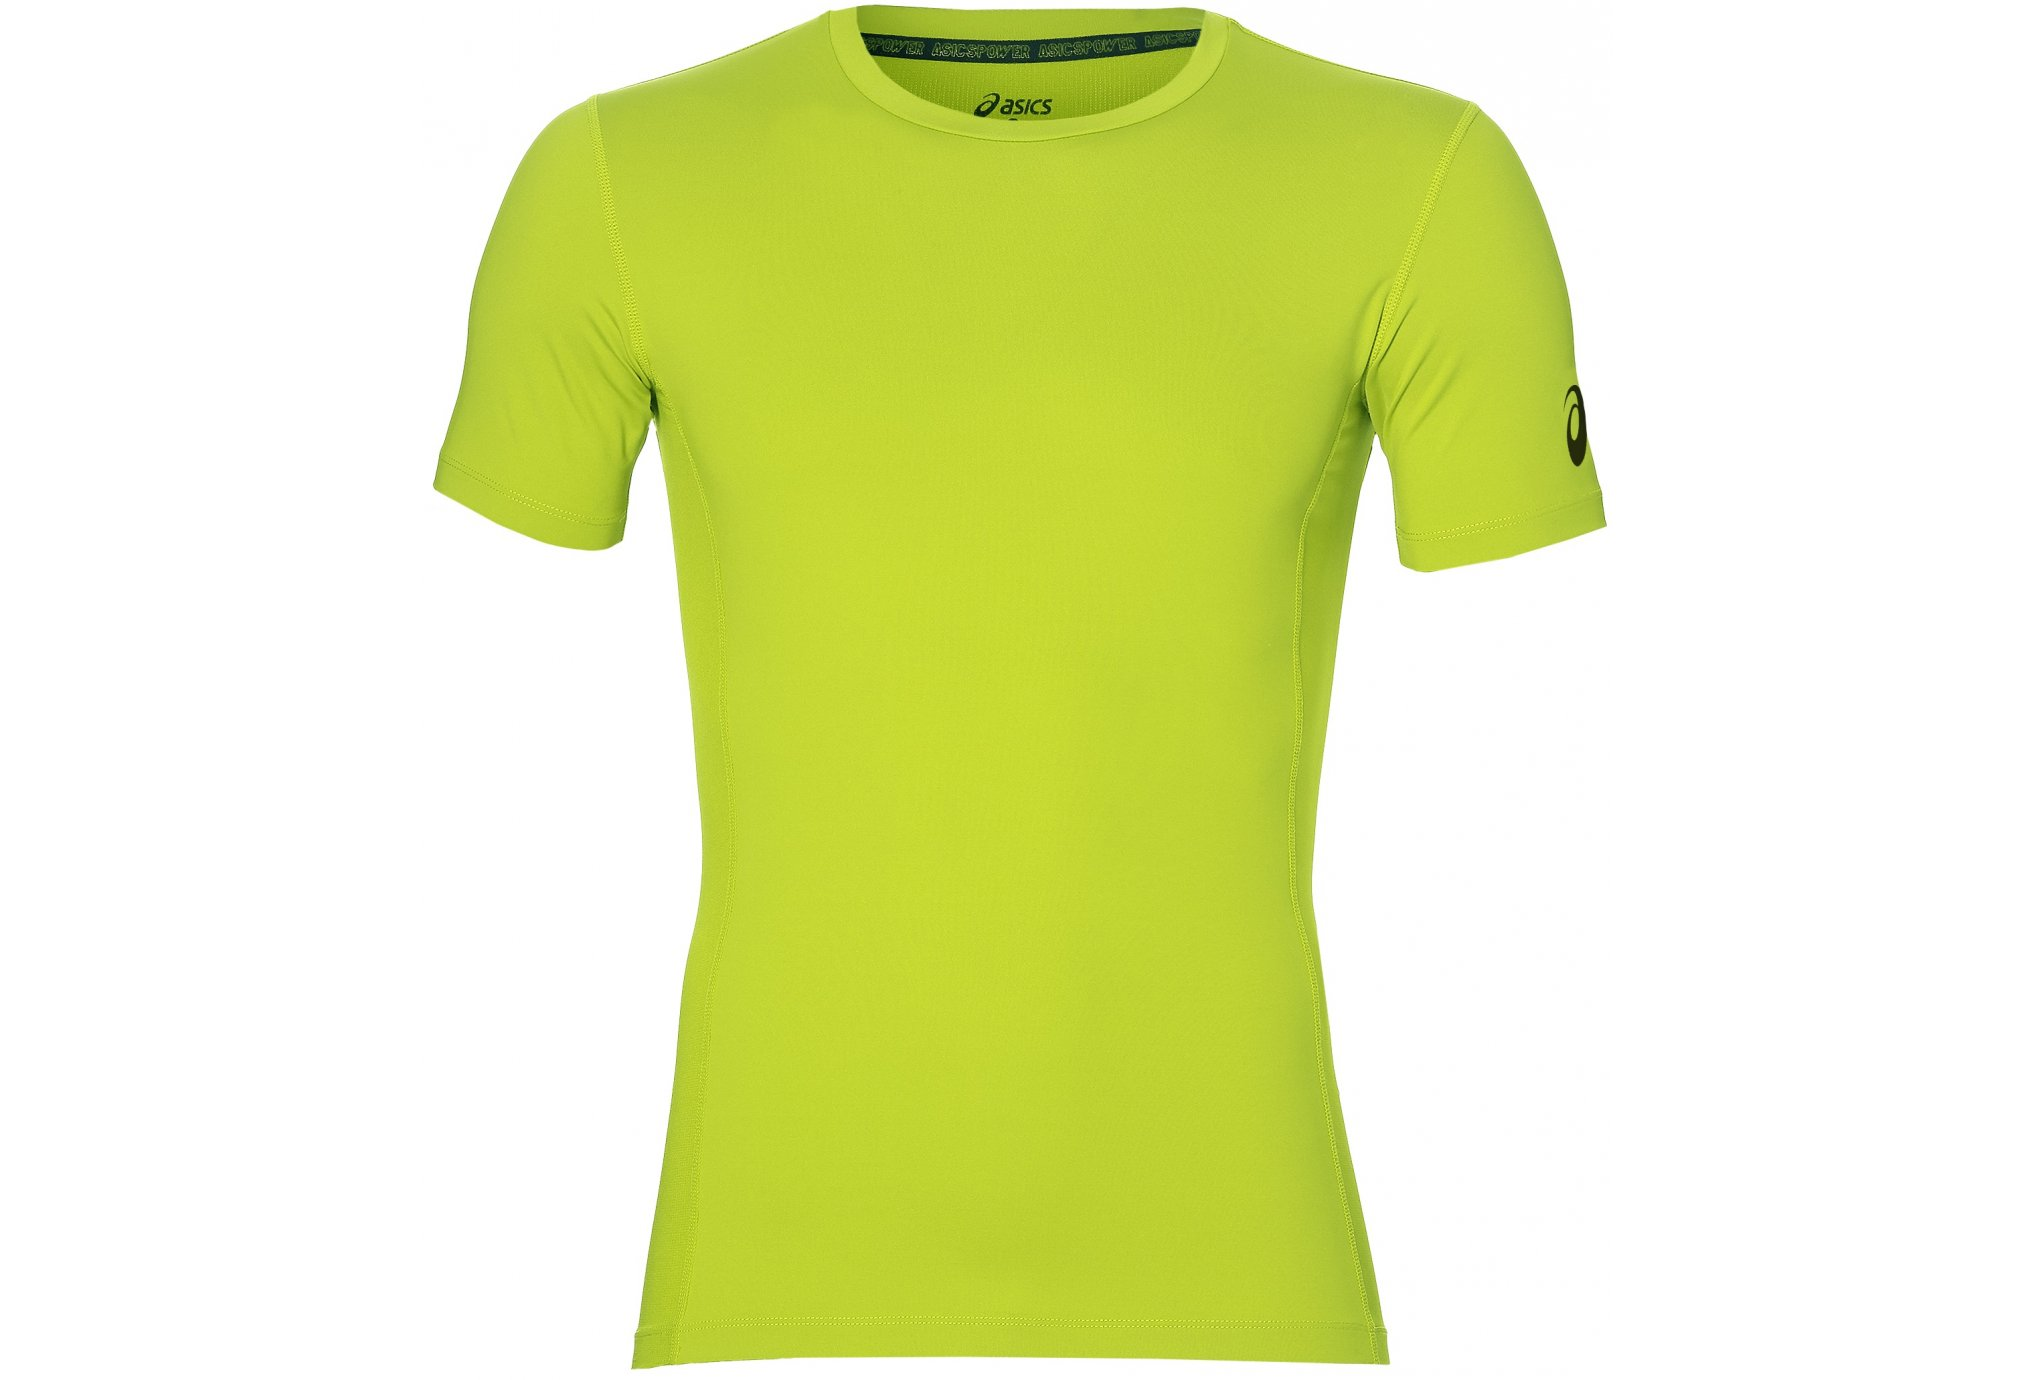 Asics Base top m vêtement running homme